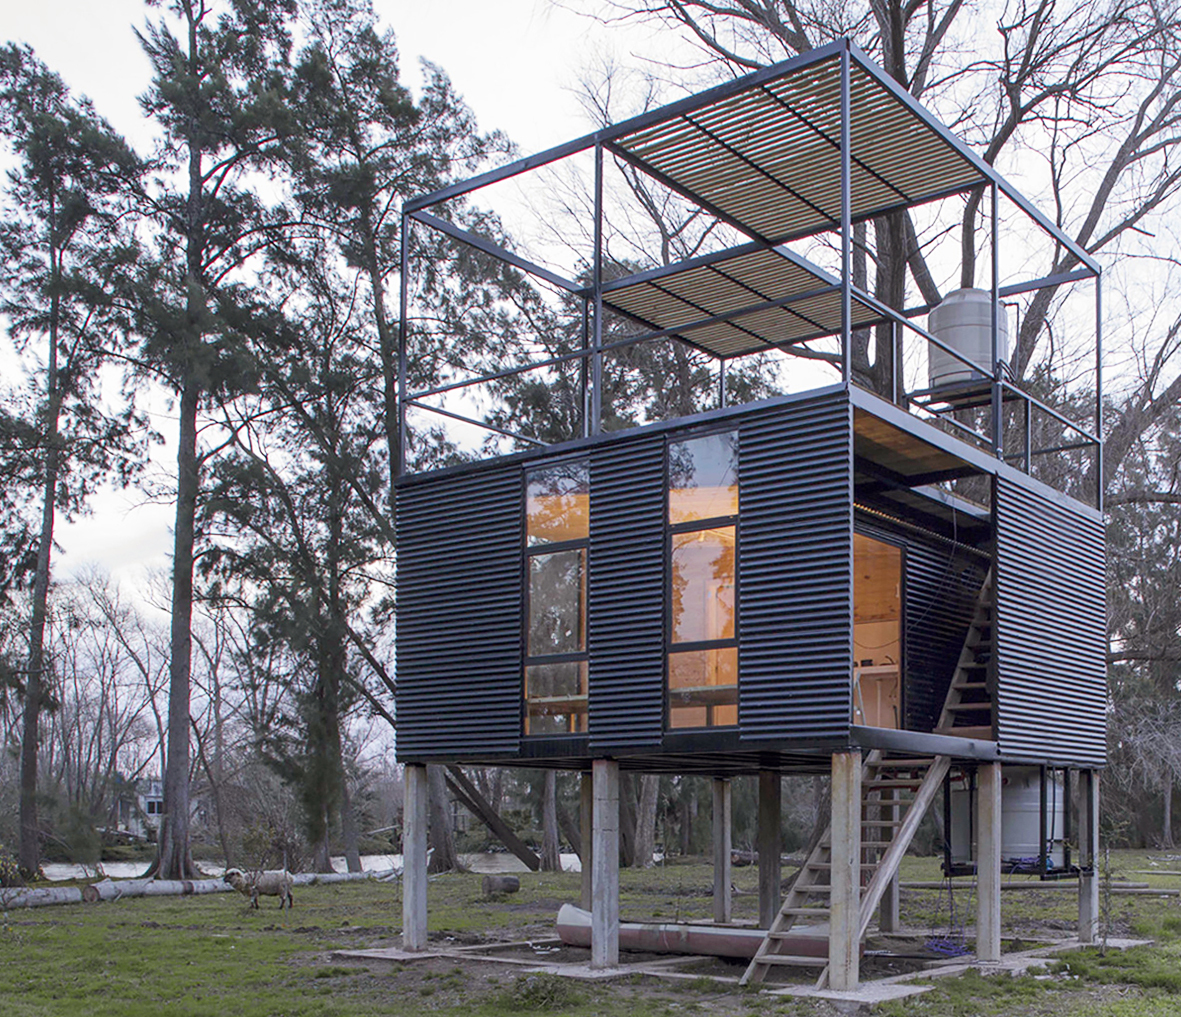 Metal Houses in Argentina: 10 Projects with Sheet Metal Exteriors